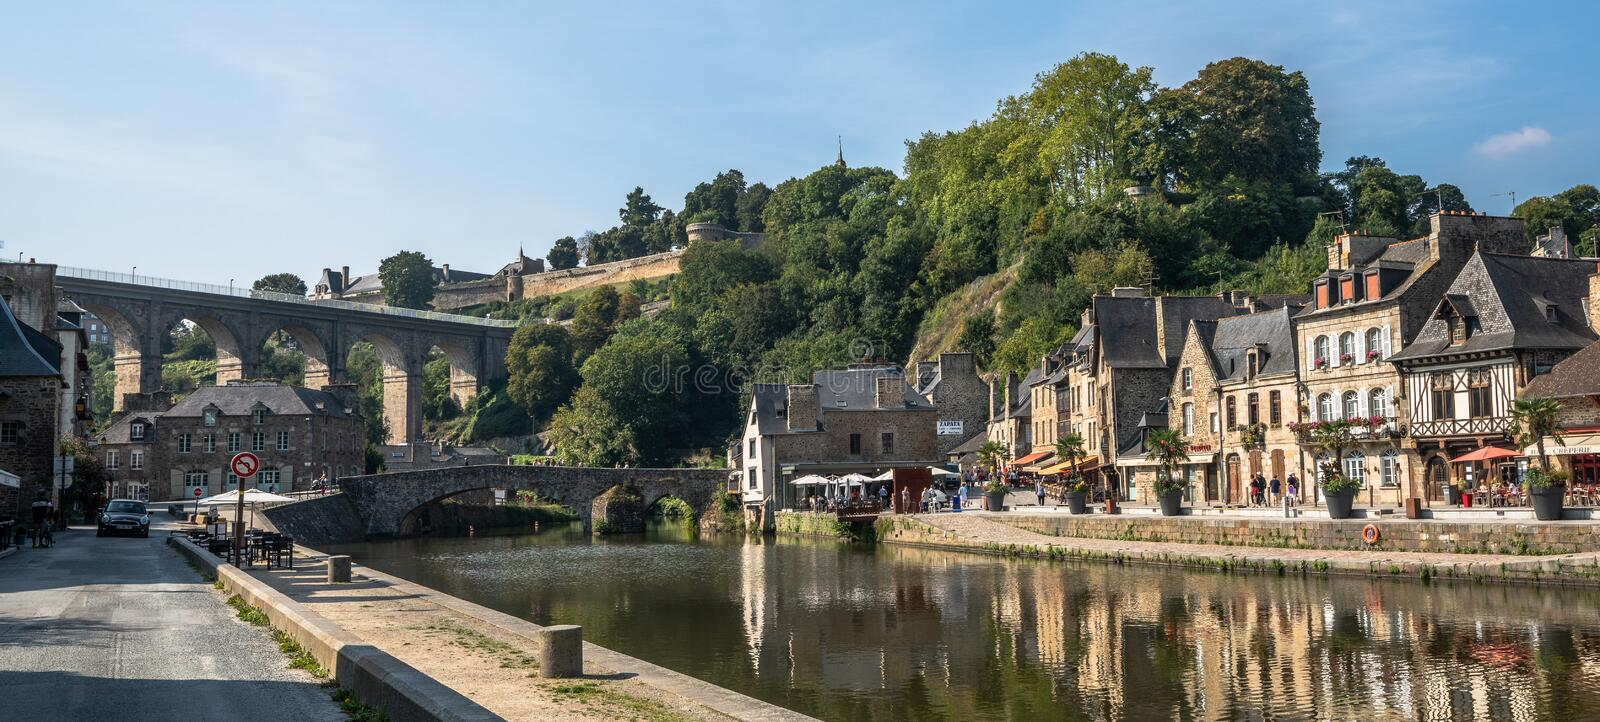 Medieval Dinan Port France on a sunny day with river view and half-timbered buildings. stock photo